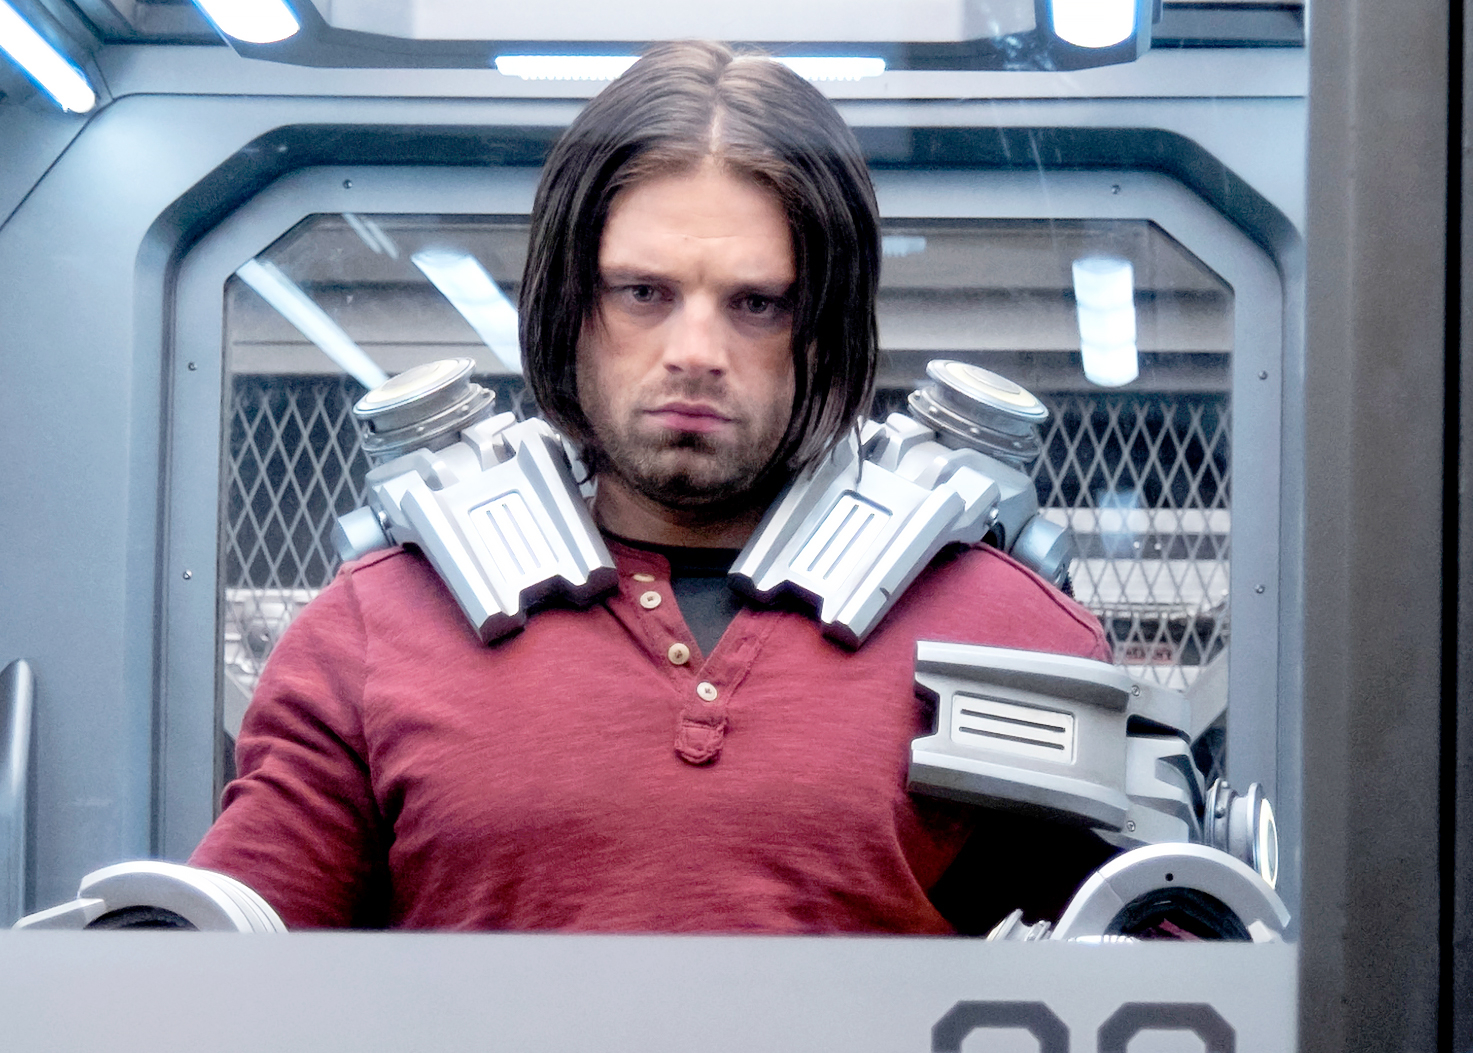 stars as superheroes Sebastian Stan - The Gossip Girl alum portrays Bucky Barnes/Winter Soldier; he first appeared in the 2001 Captain America film. Since, he has appeared in six MCU movies.